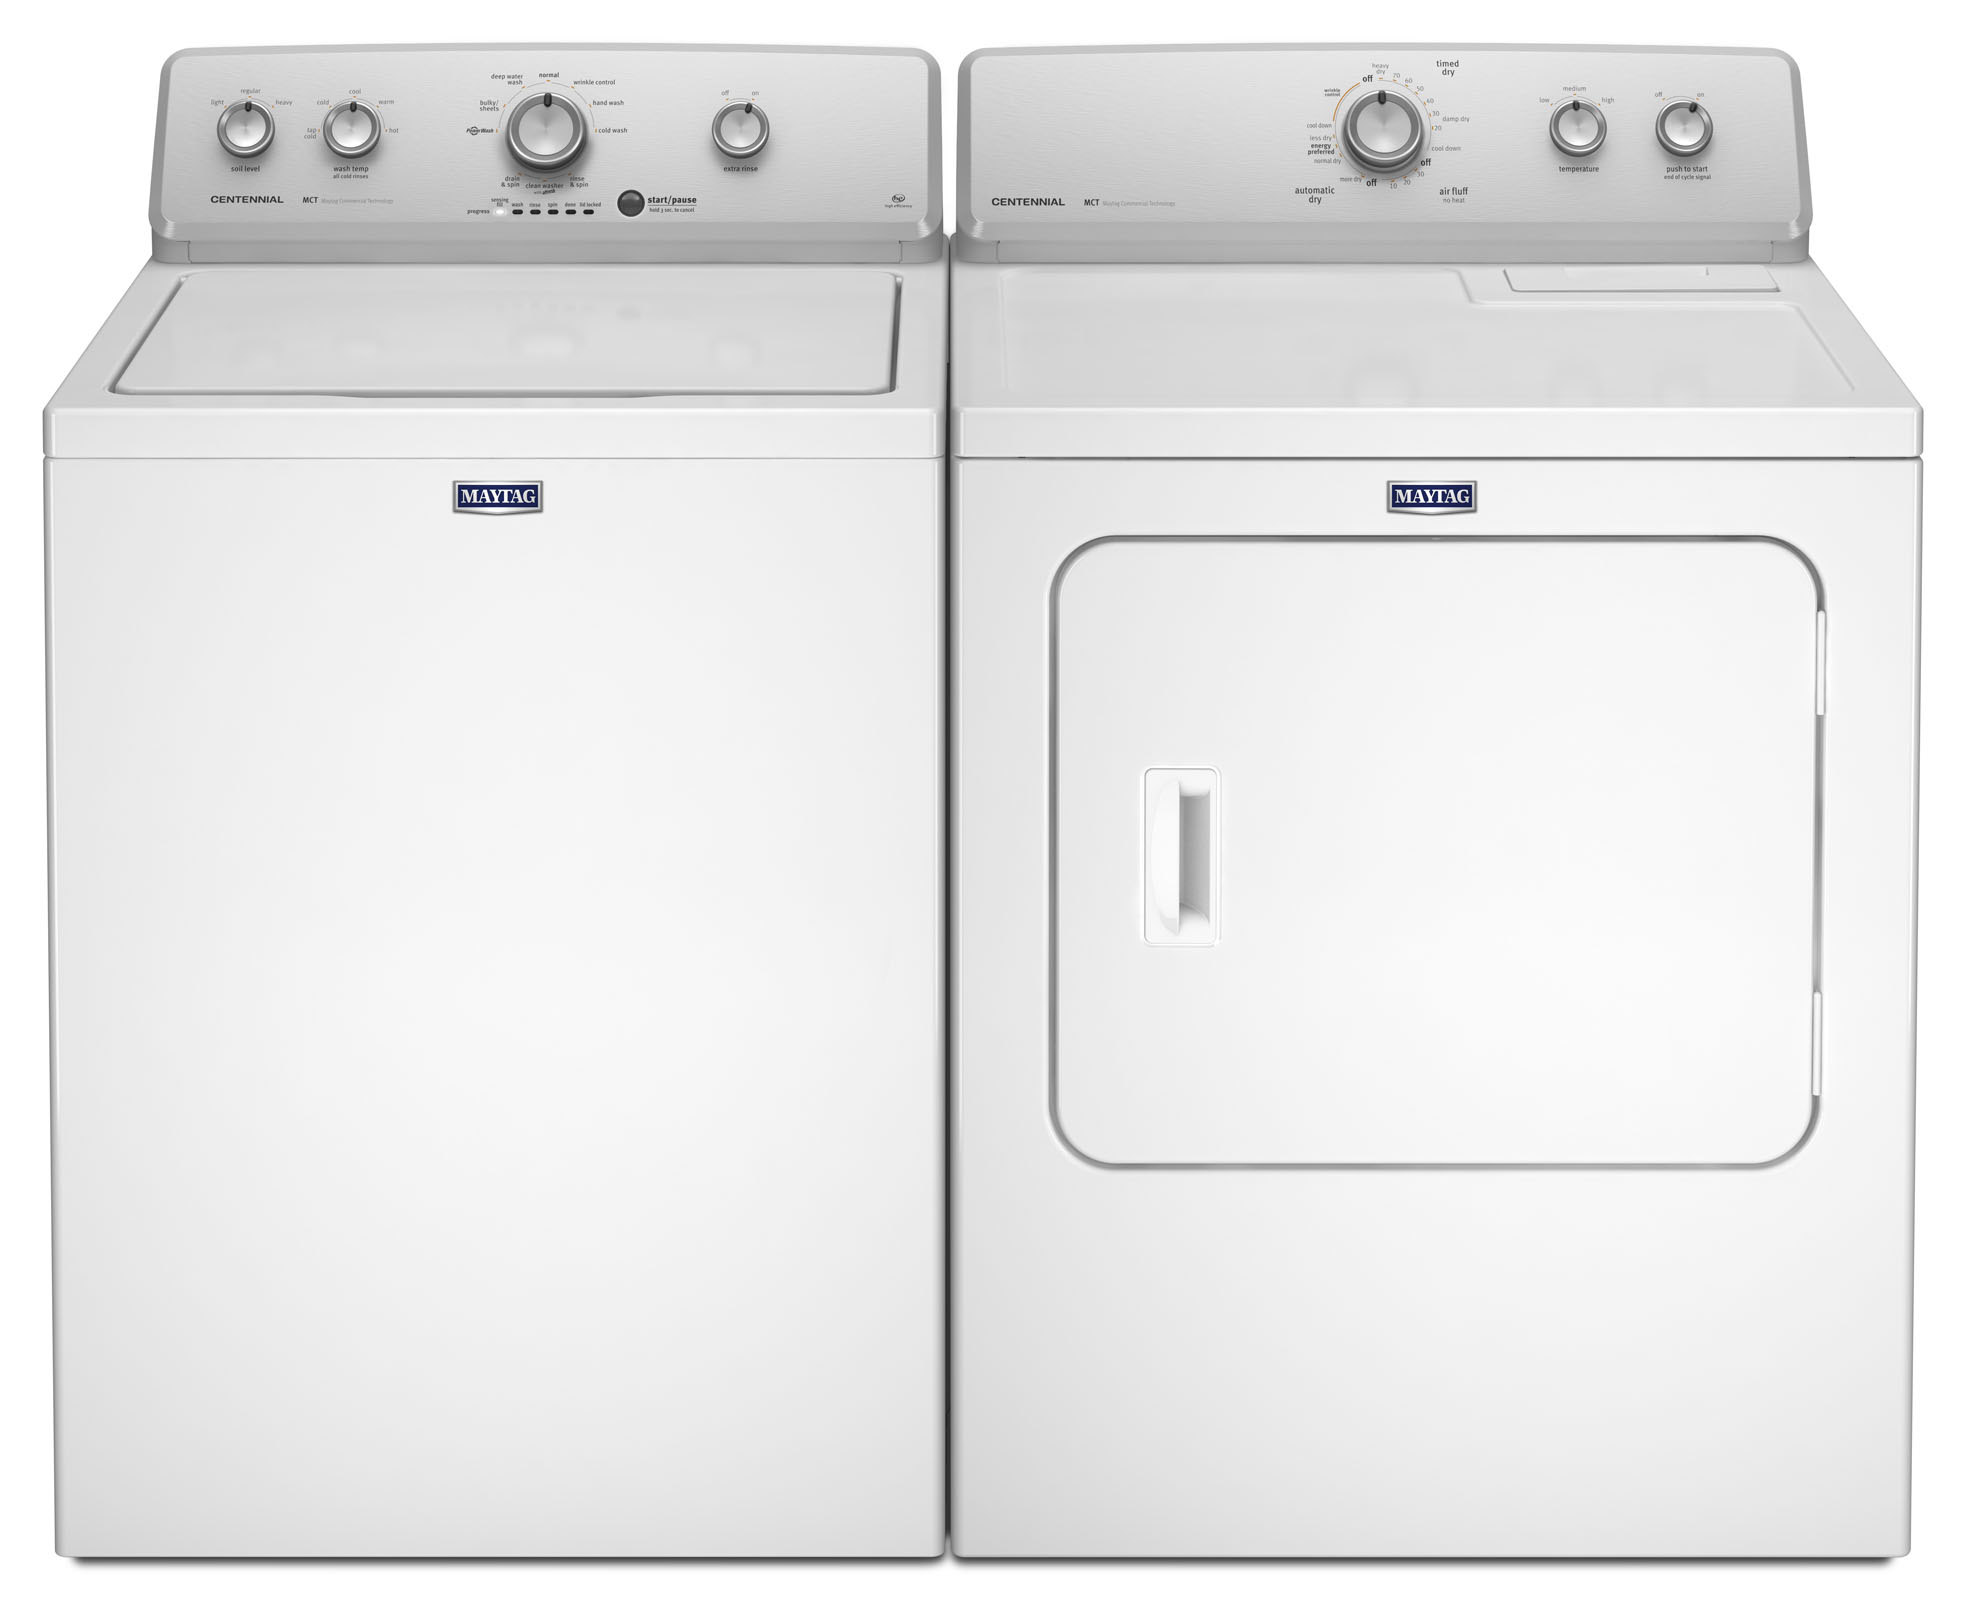 Maytag 3.6 cu. ft. Top Load Washer & 7.0 cu. ft. Dryer - White